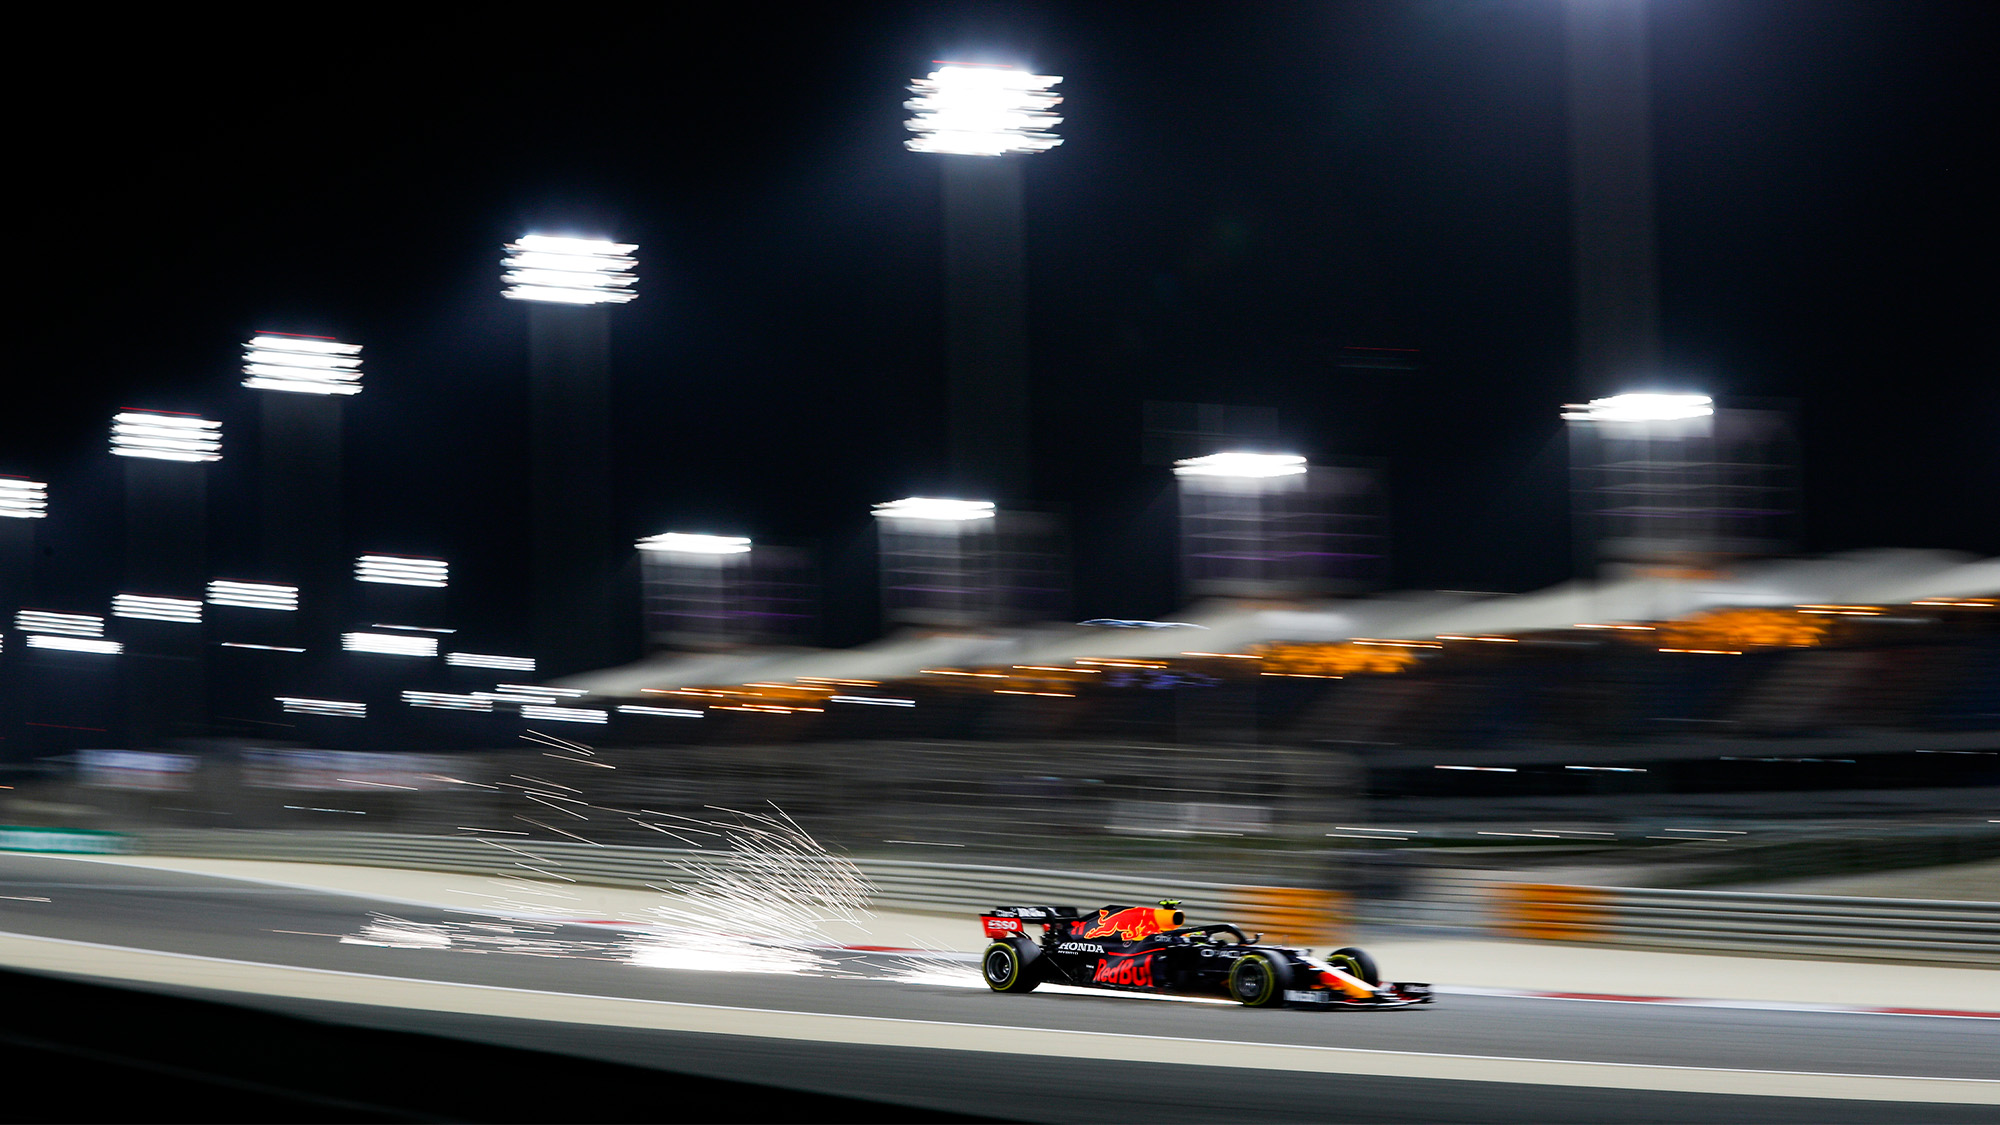 Sparks fly from Sergio Perez Red Bull in qualifying for the 2021 Bahrain Grand Prix